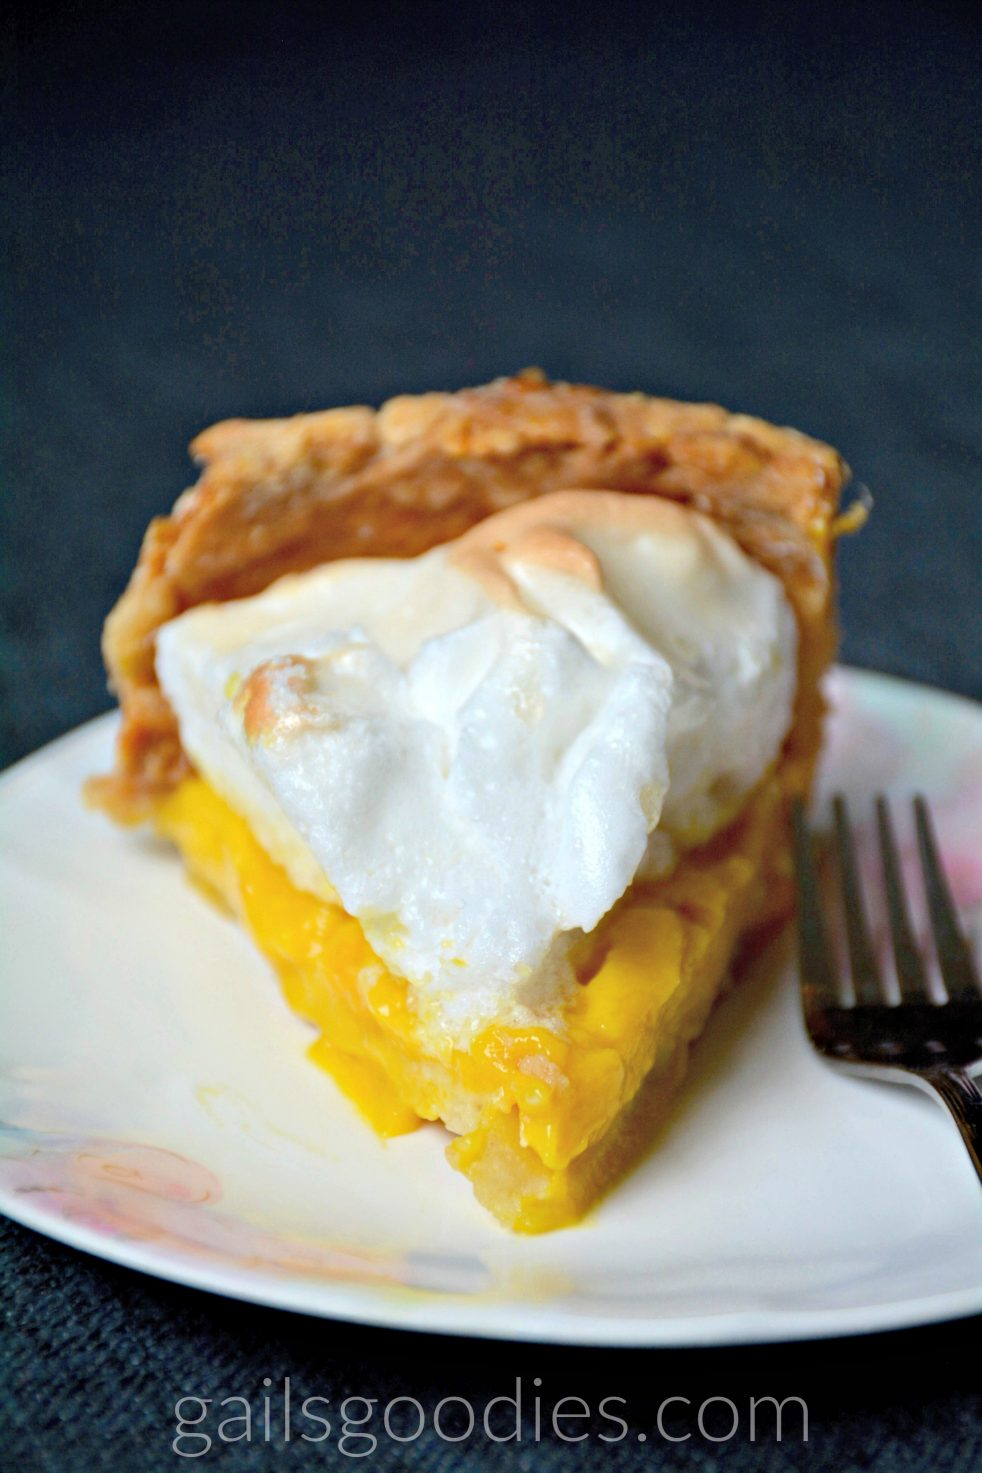 A slice of mango meringue pie sits facing directly forward on a plate. The bottom layer of bright orange mango curd is topped with mounds of golden meringue.